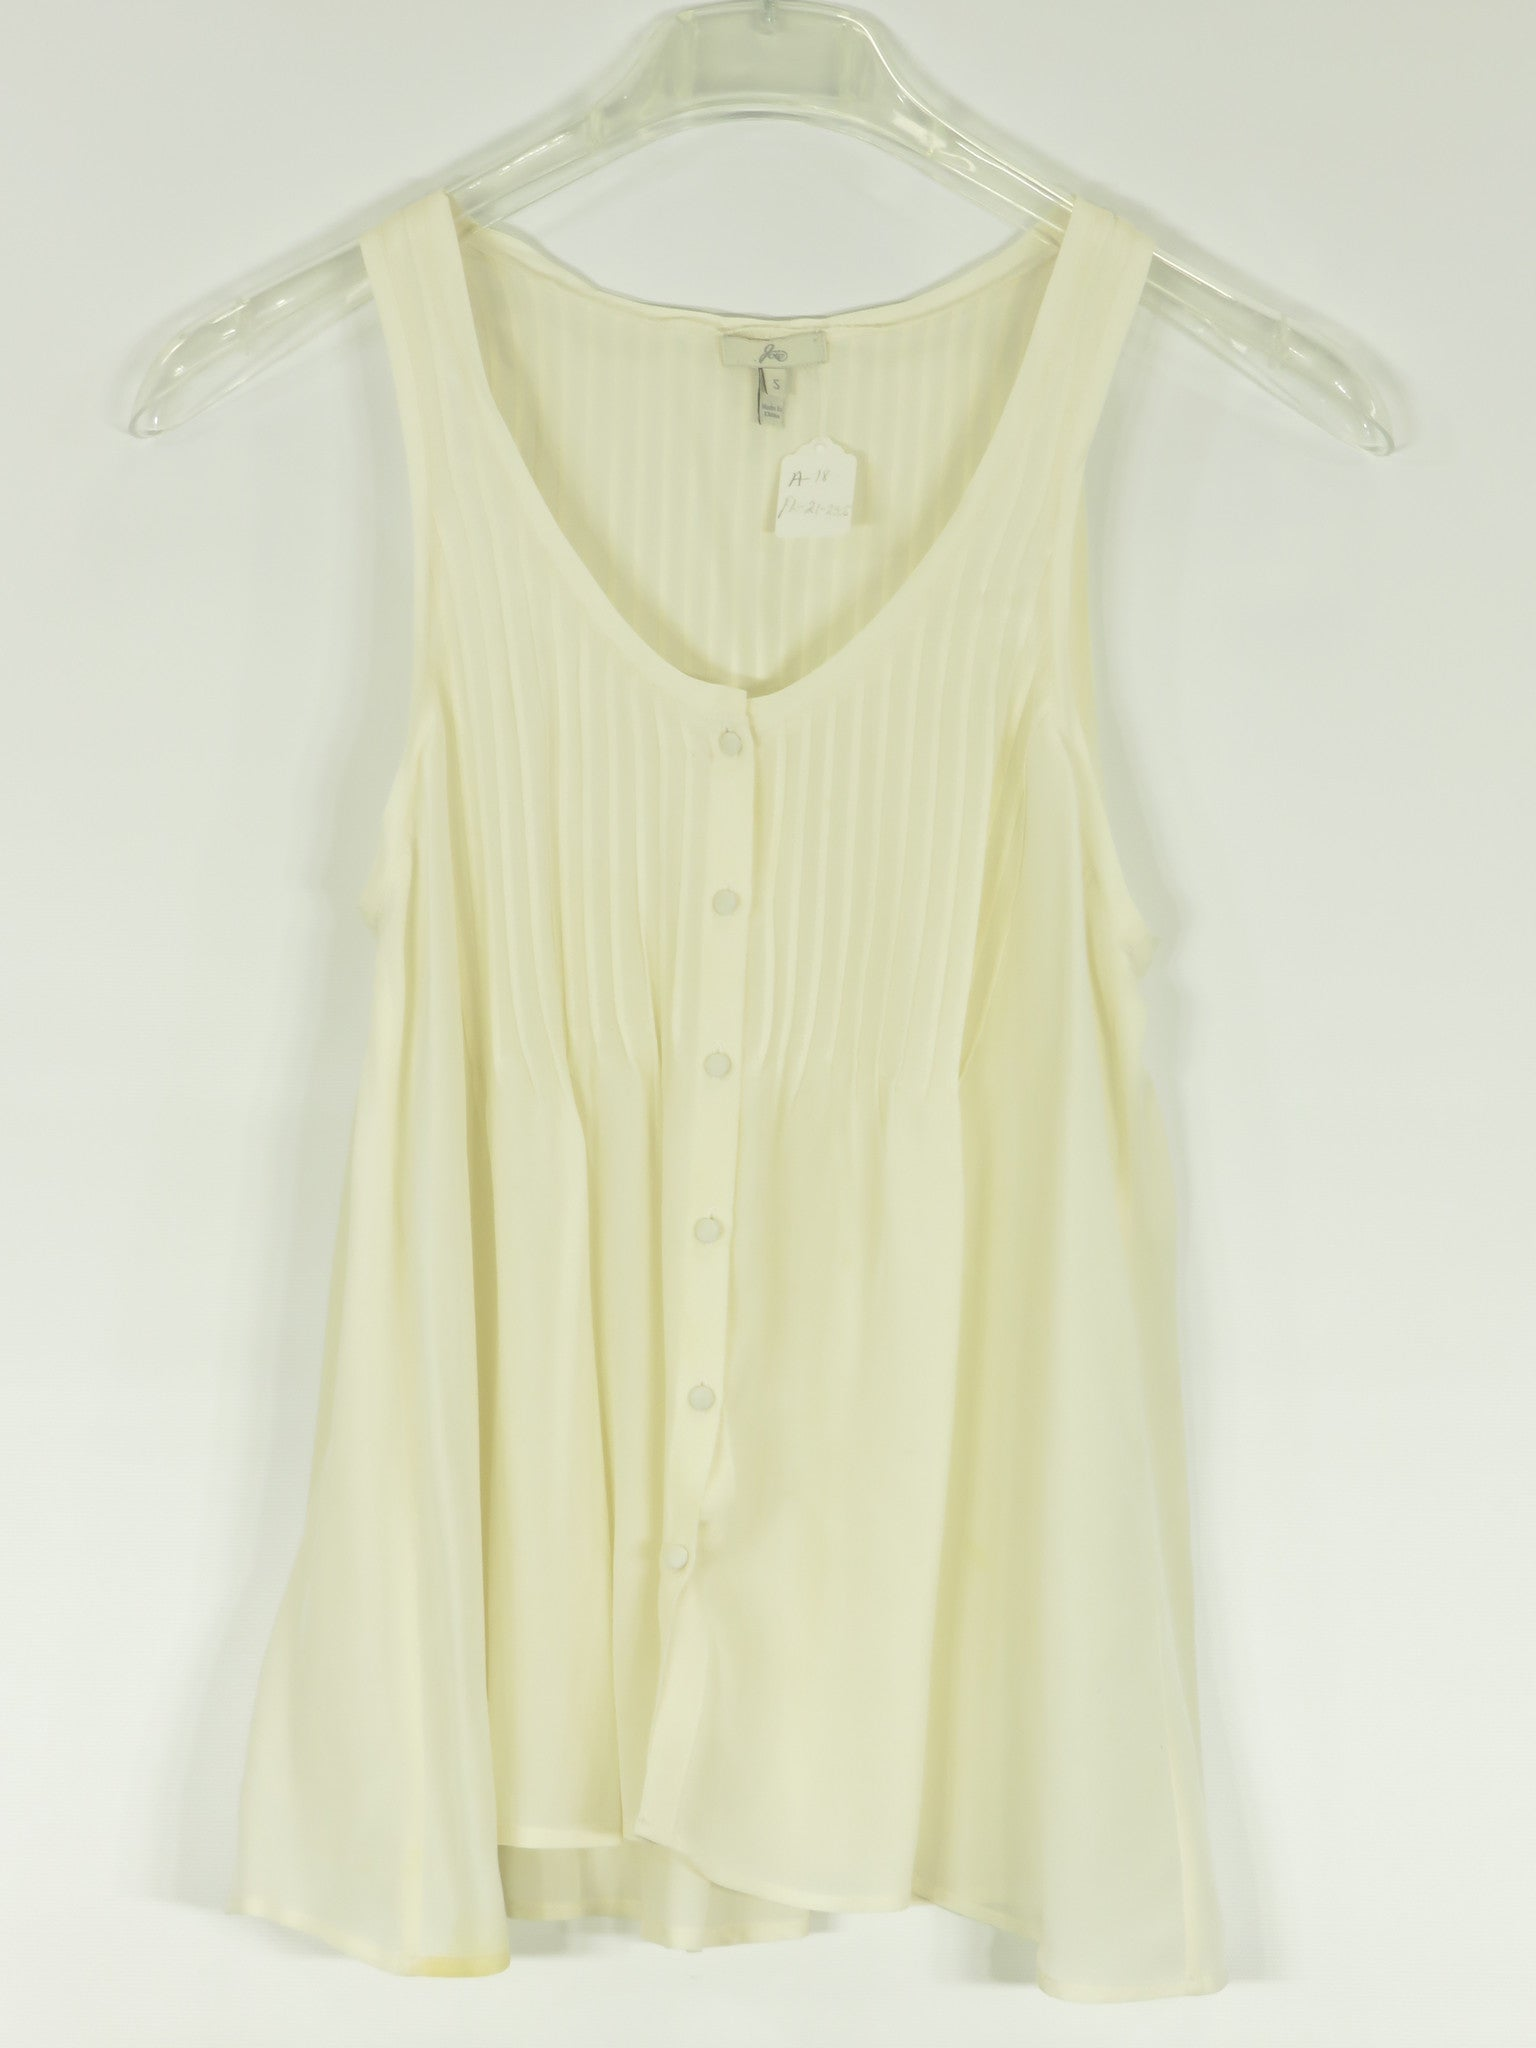 7edd8bc2f JOIE Women Off White Sheer Pleated Sleeveless Button Down Tank Top Shirt  Size S. Joie Lorena's Worth